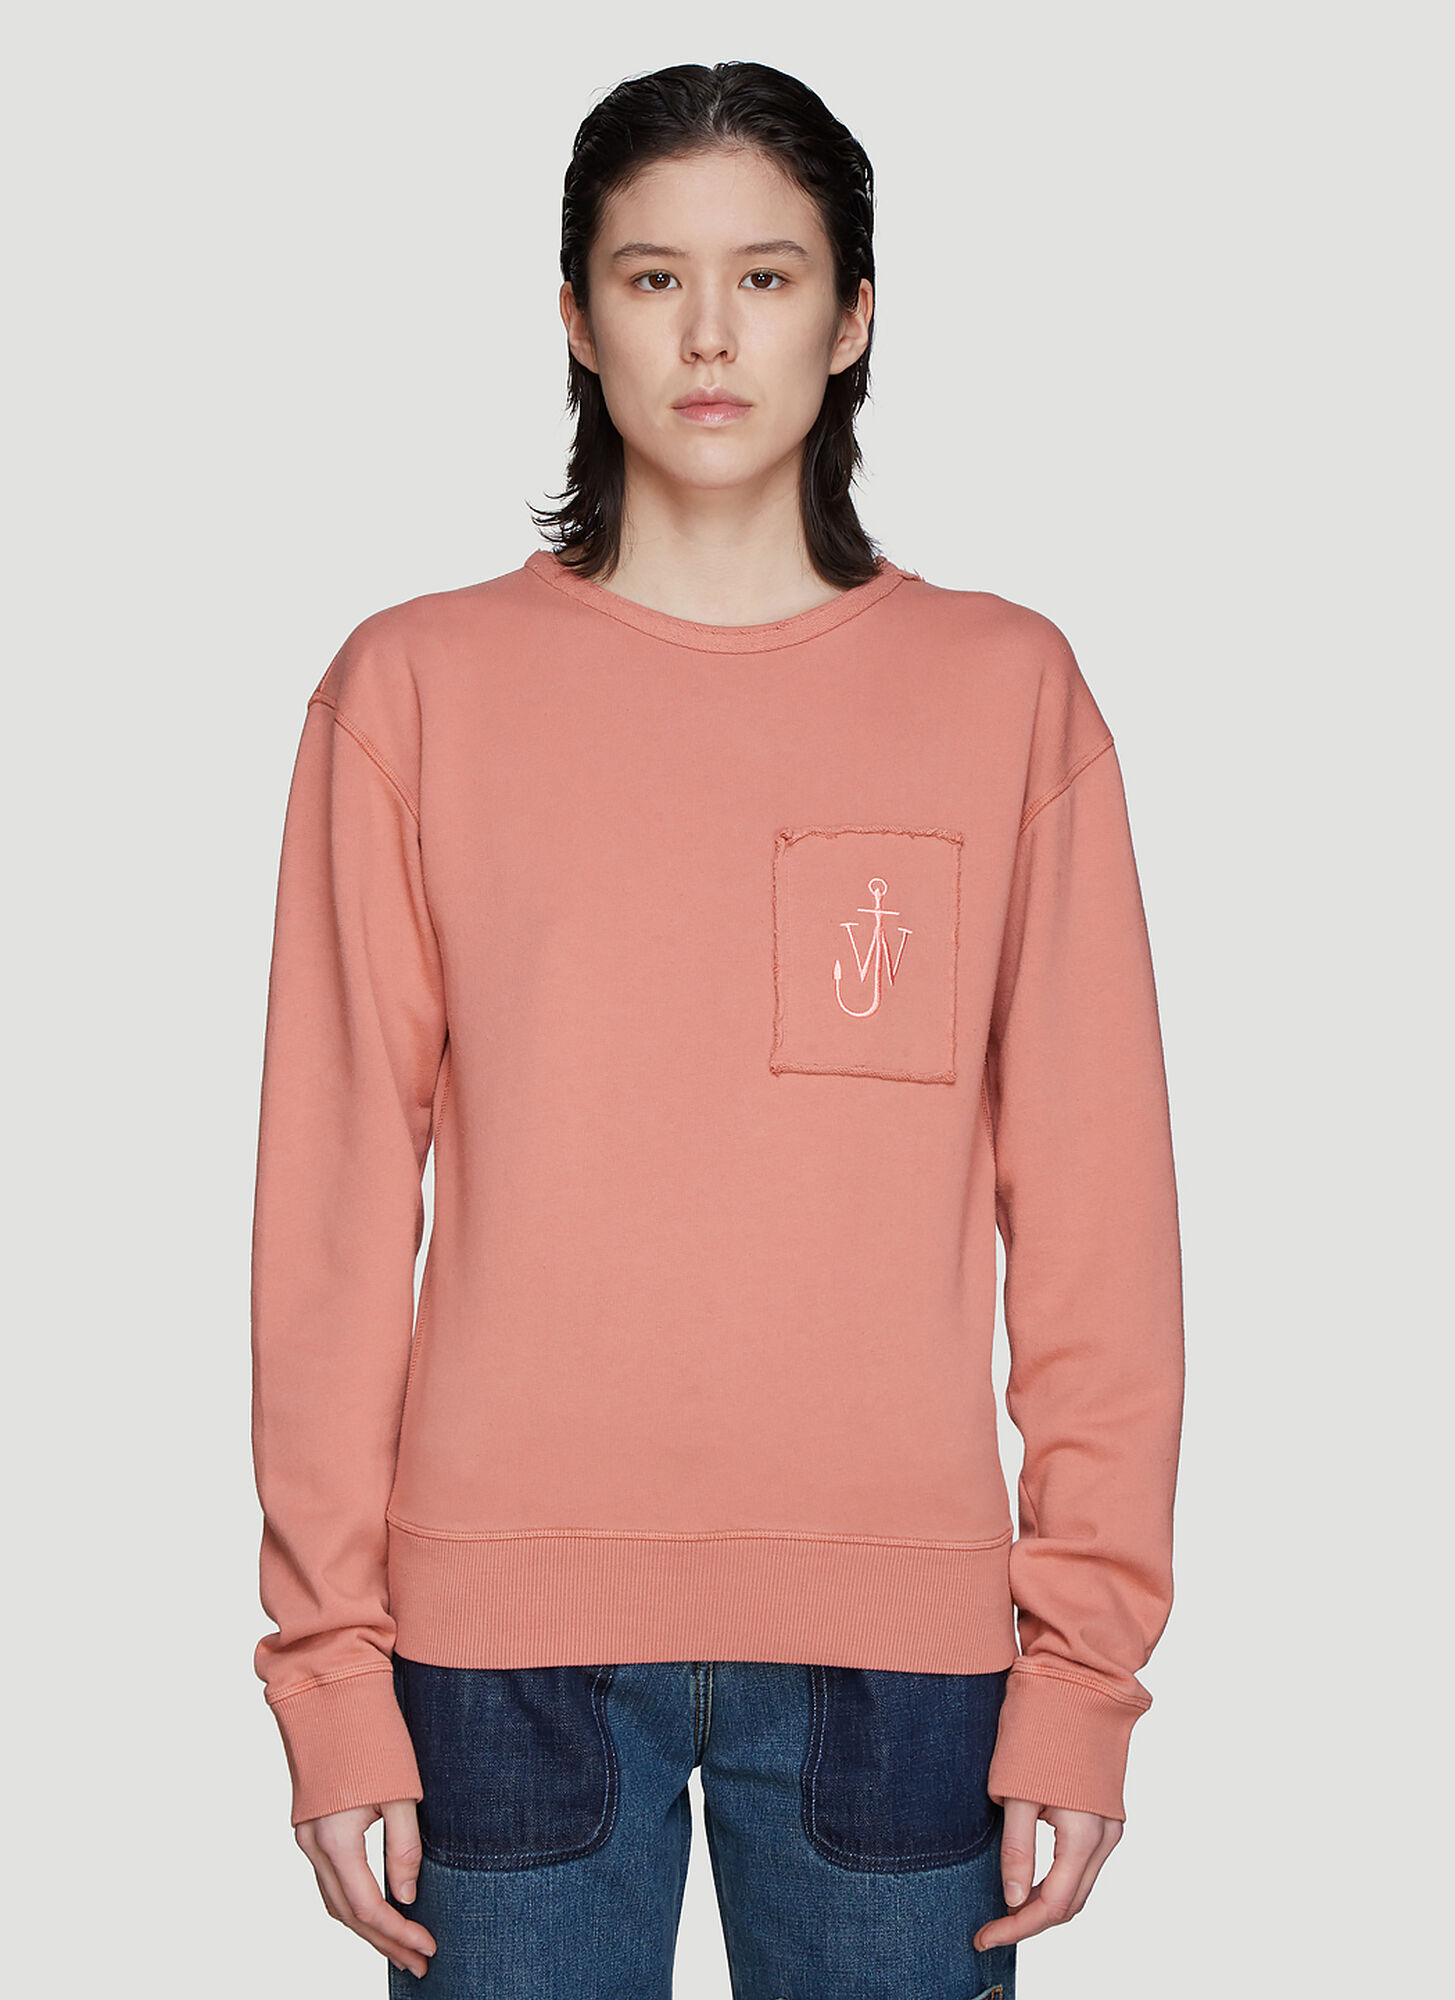 JW Anderson Anchor Patch Sweatshirt in Pink